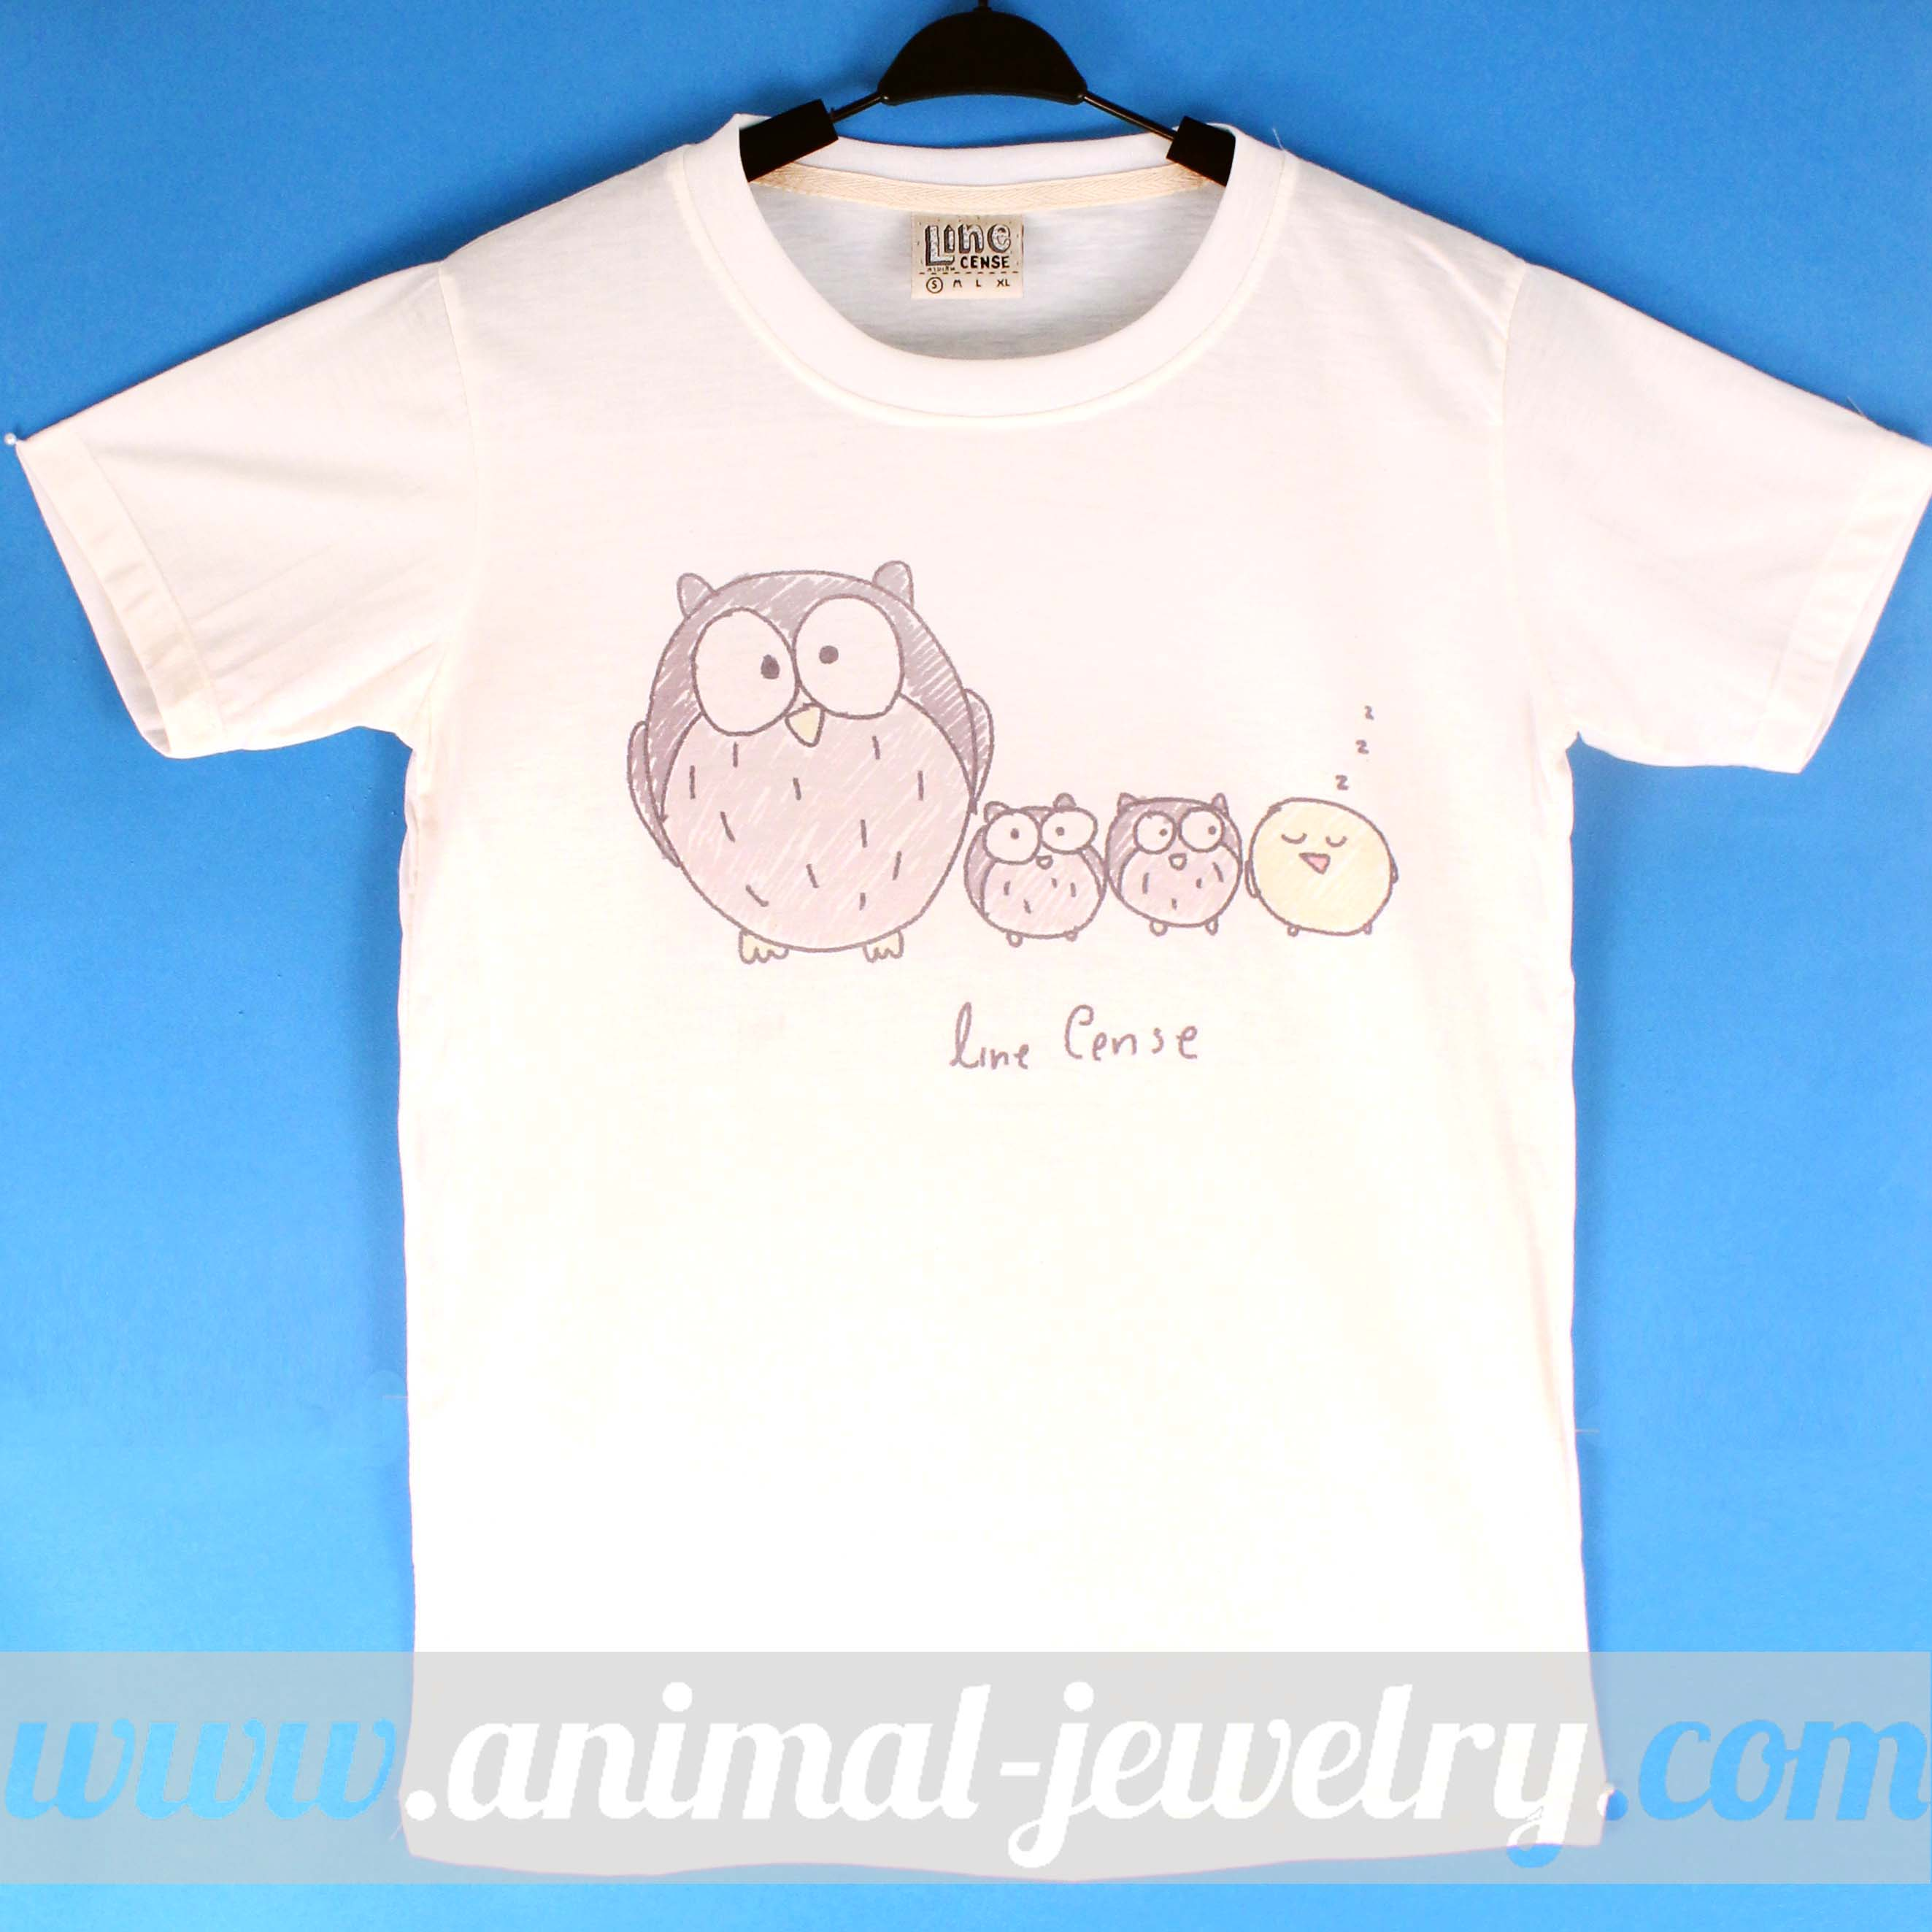 cute-owl-and-birds-illustration-print-on-t-shirt